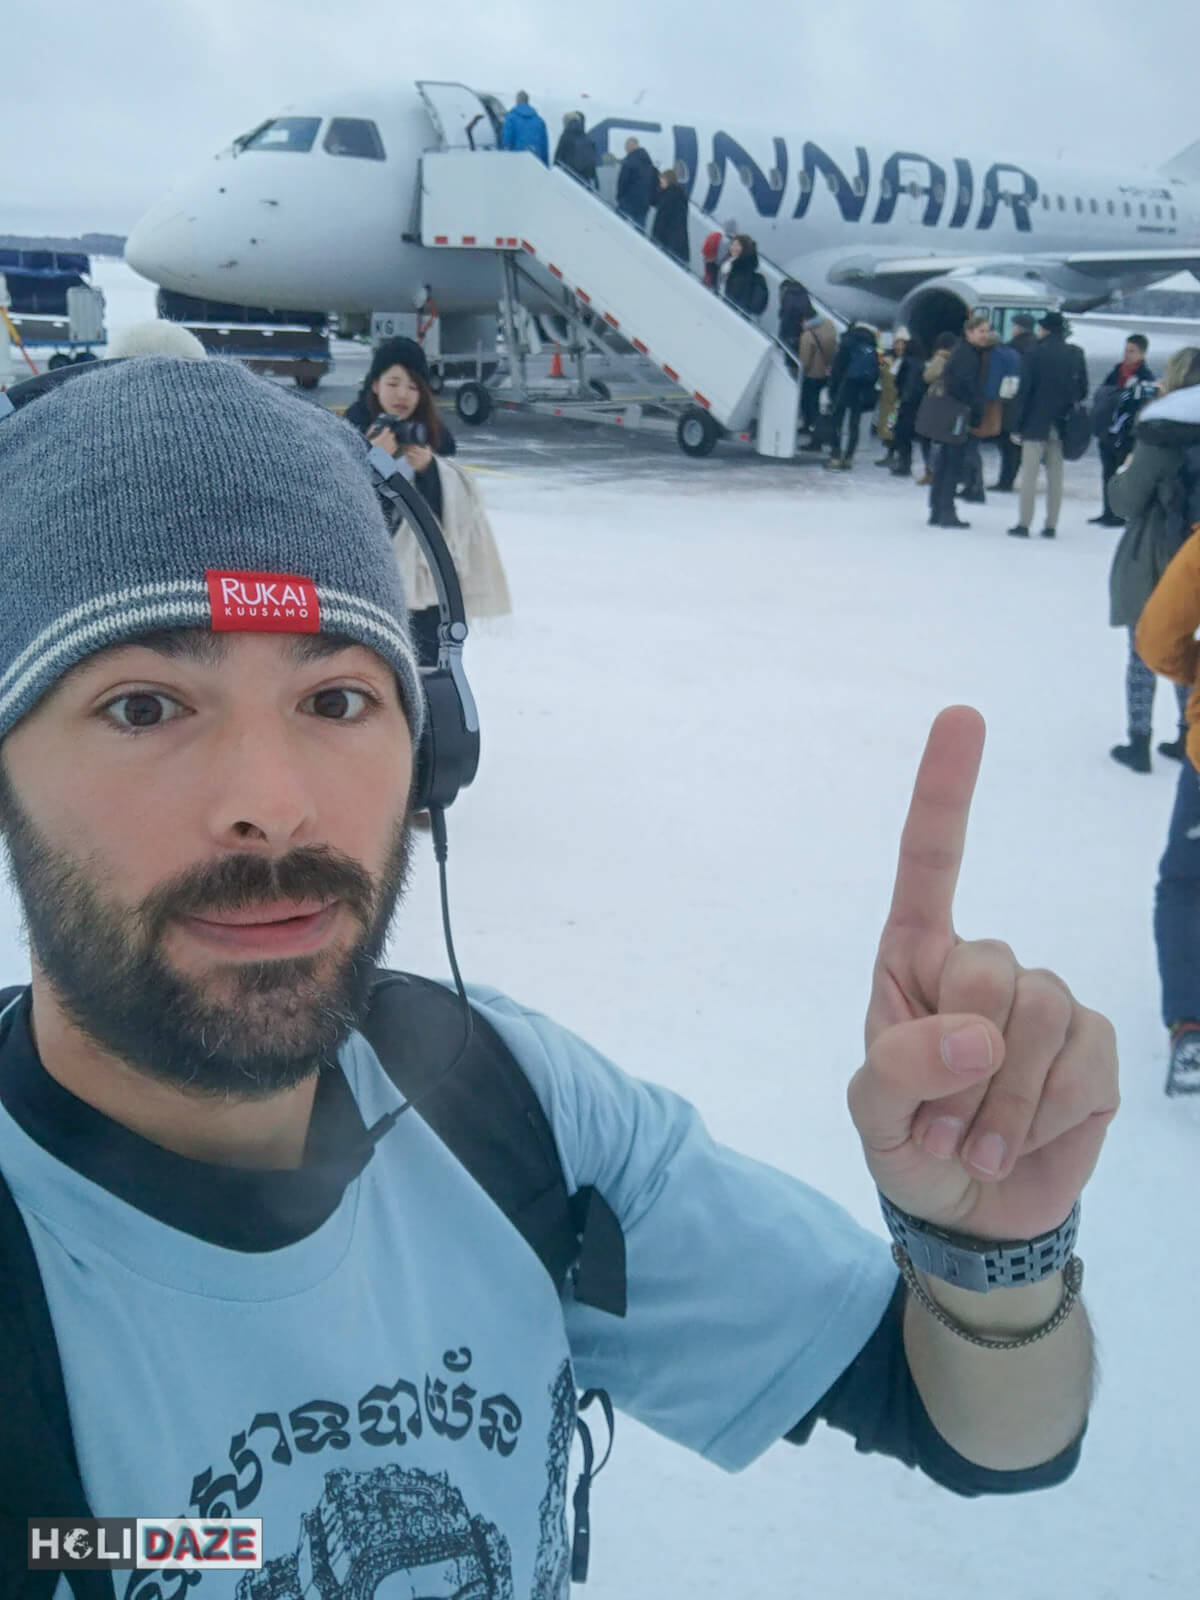 Flying Finnair around Lapland in Northern Finland -- best airlines ever!